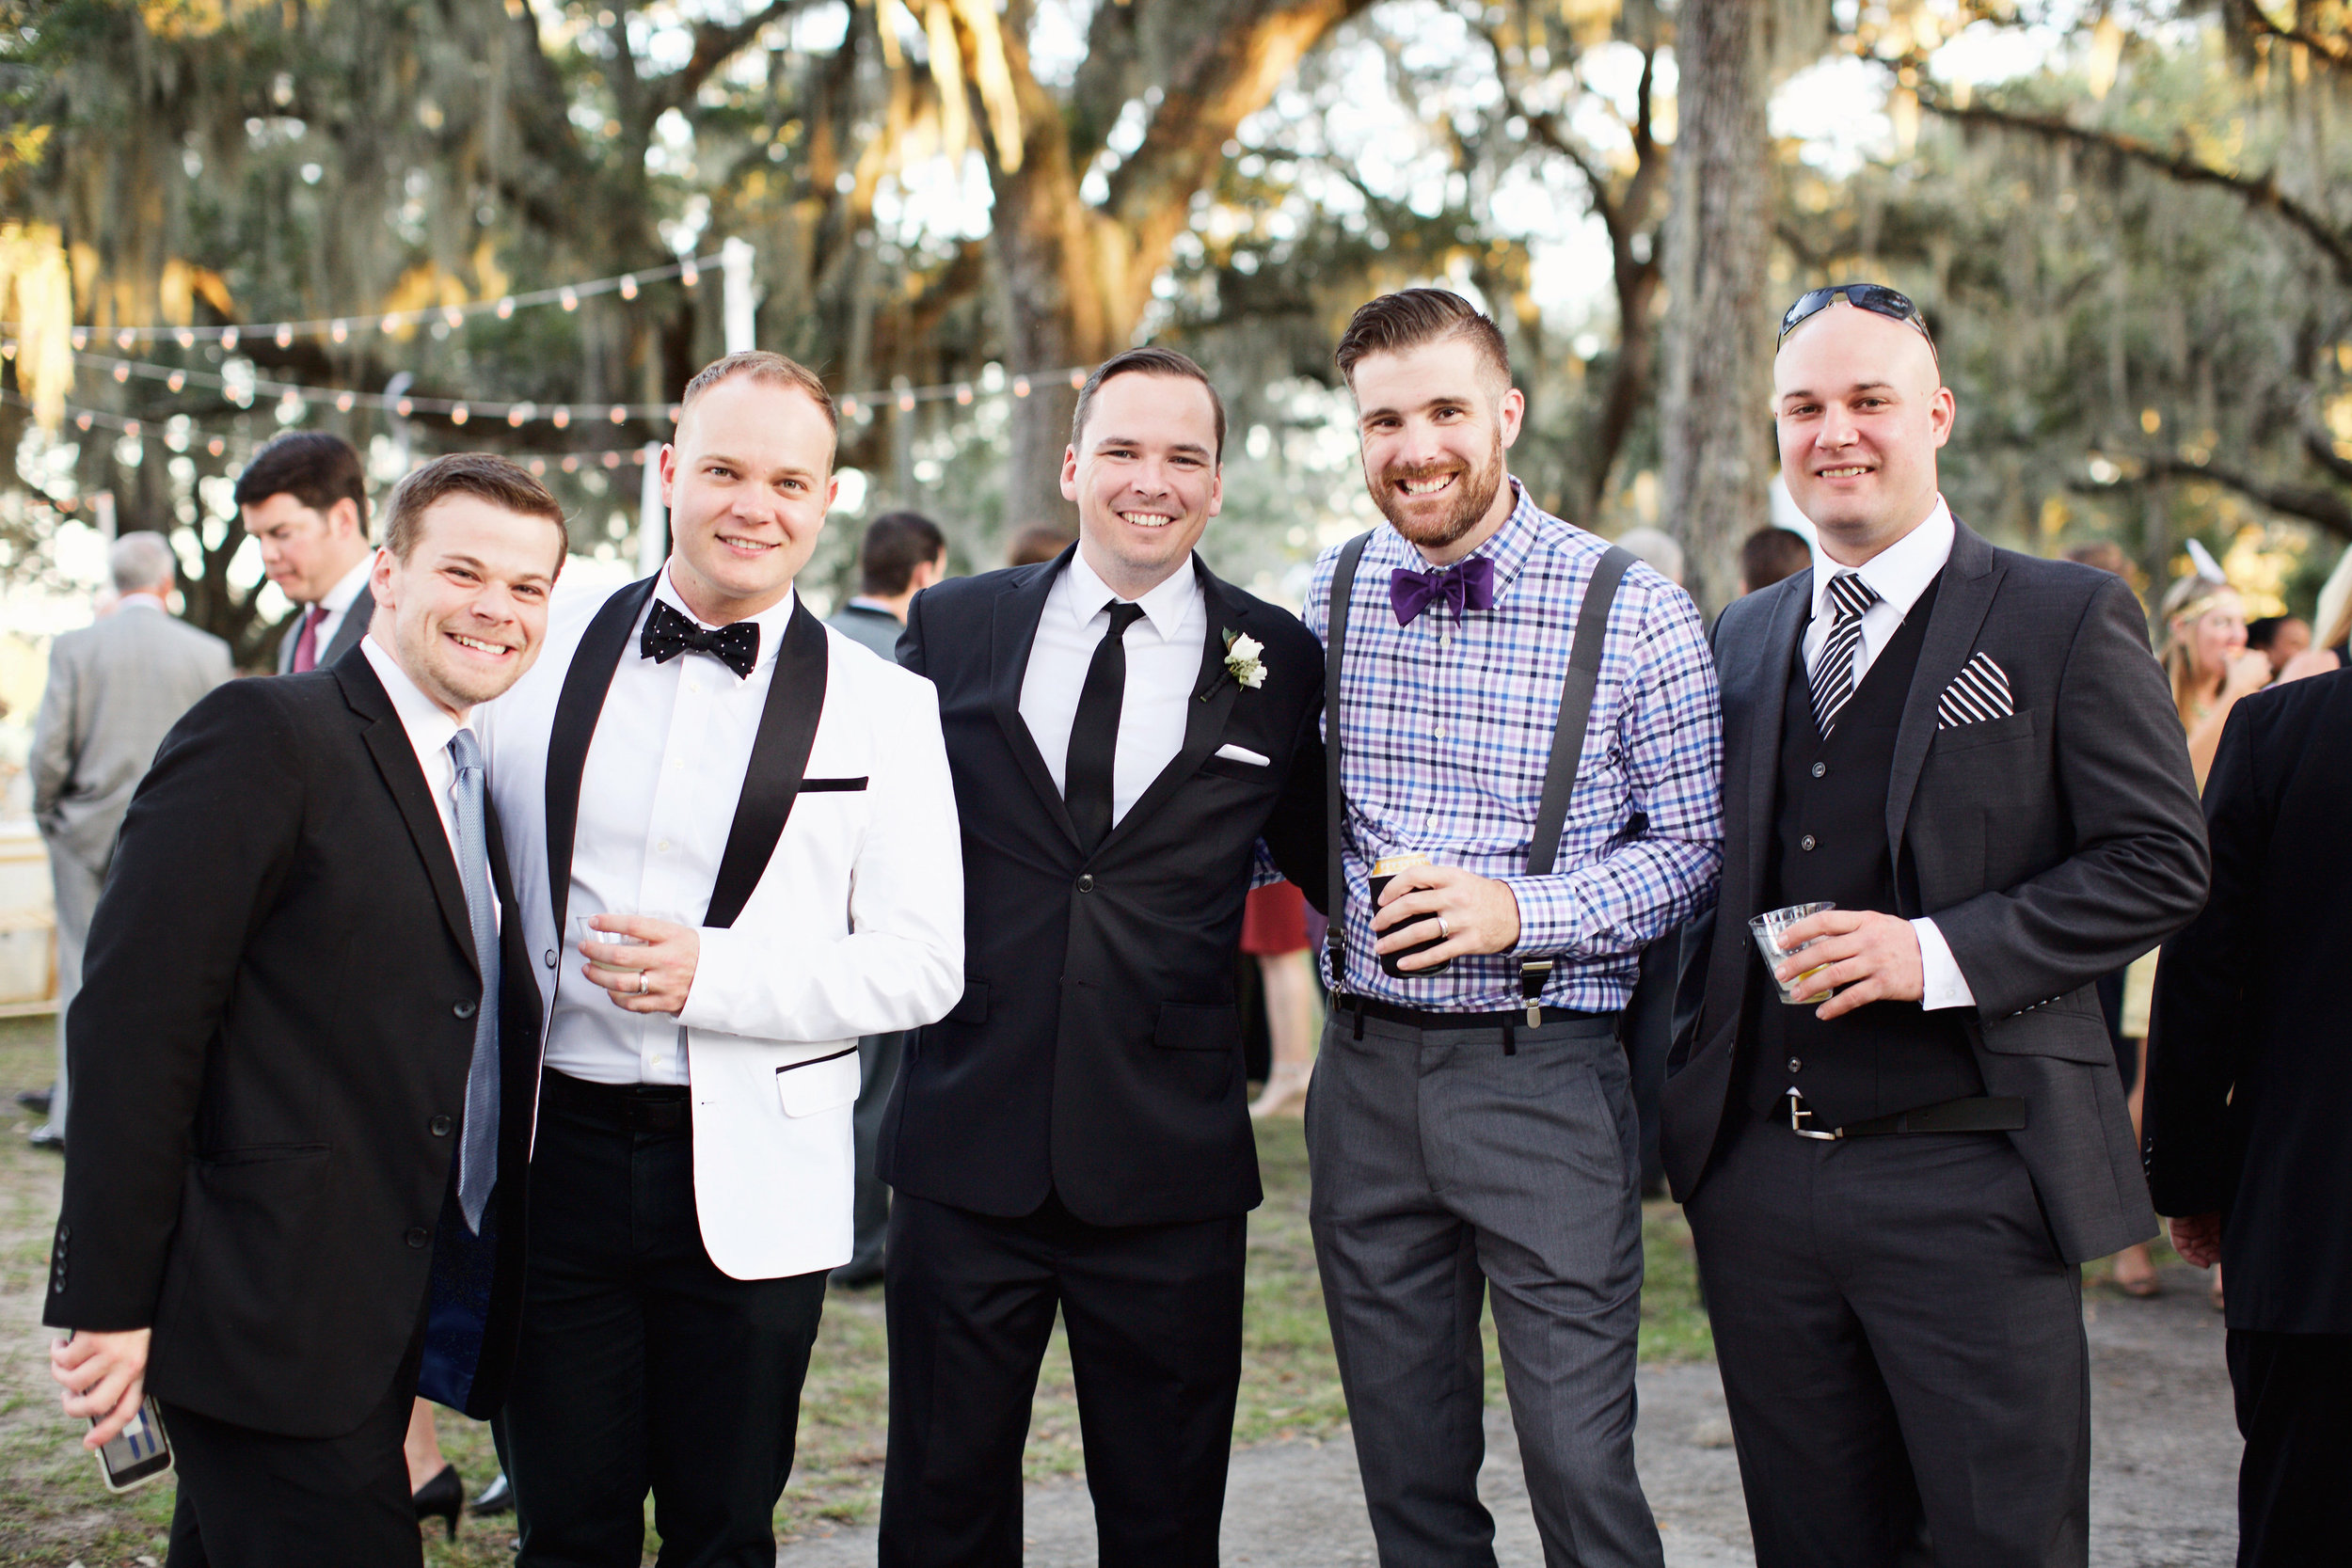 Bethesda Academy Wedding in Savannah, GA